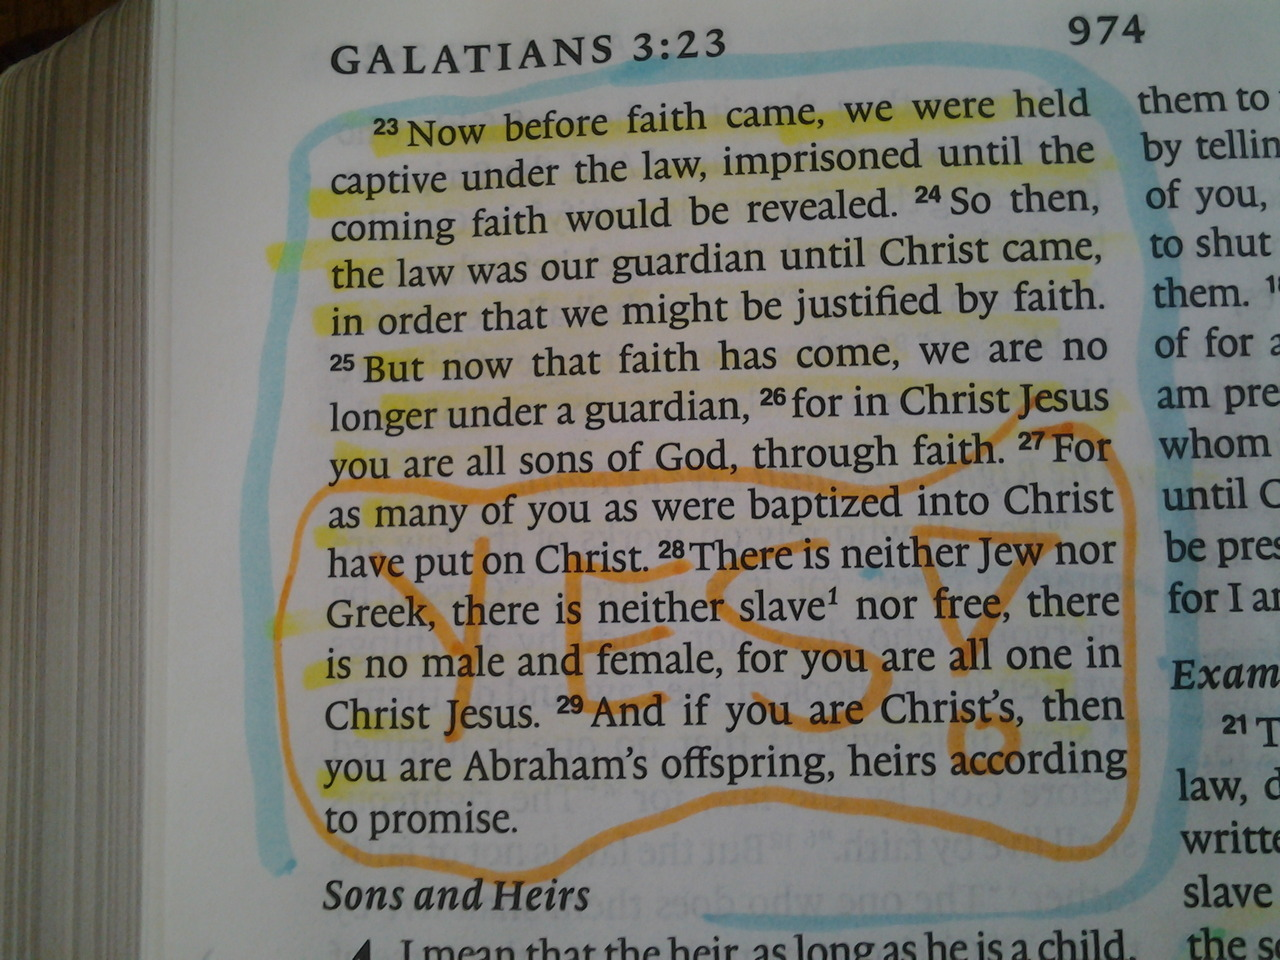 Studying Galatians with Matt. :) I think we both agree this deserves to be tumblr famous.